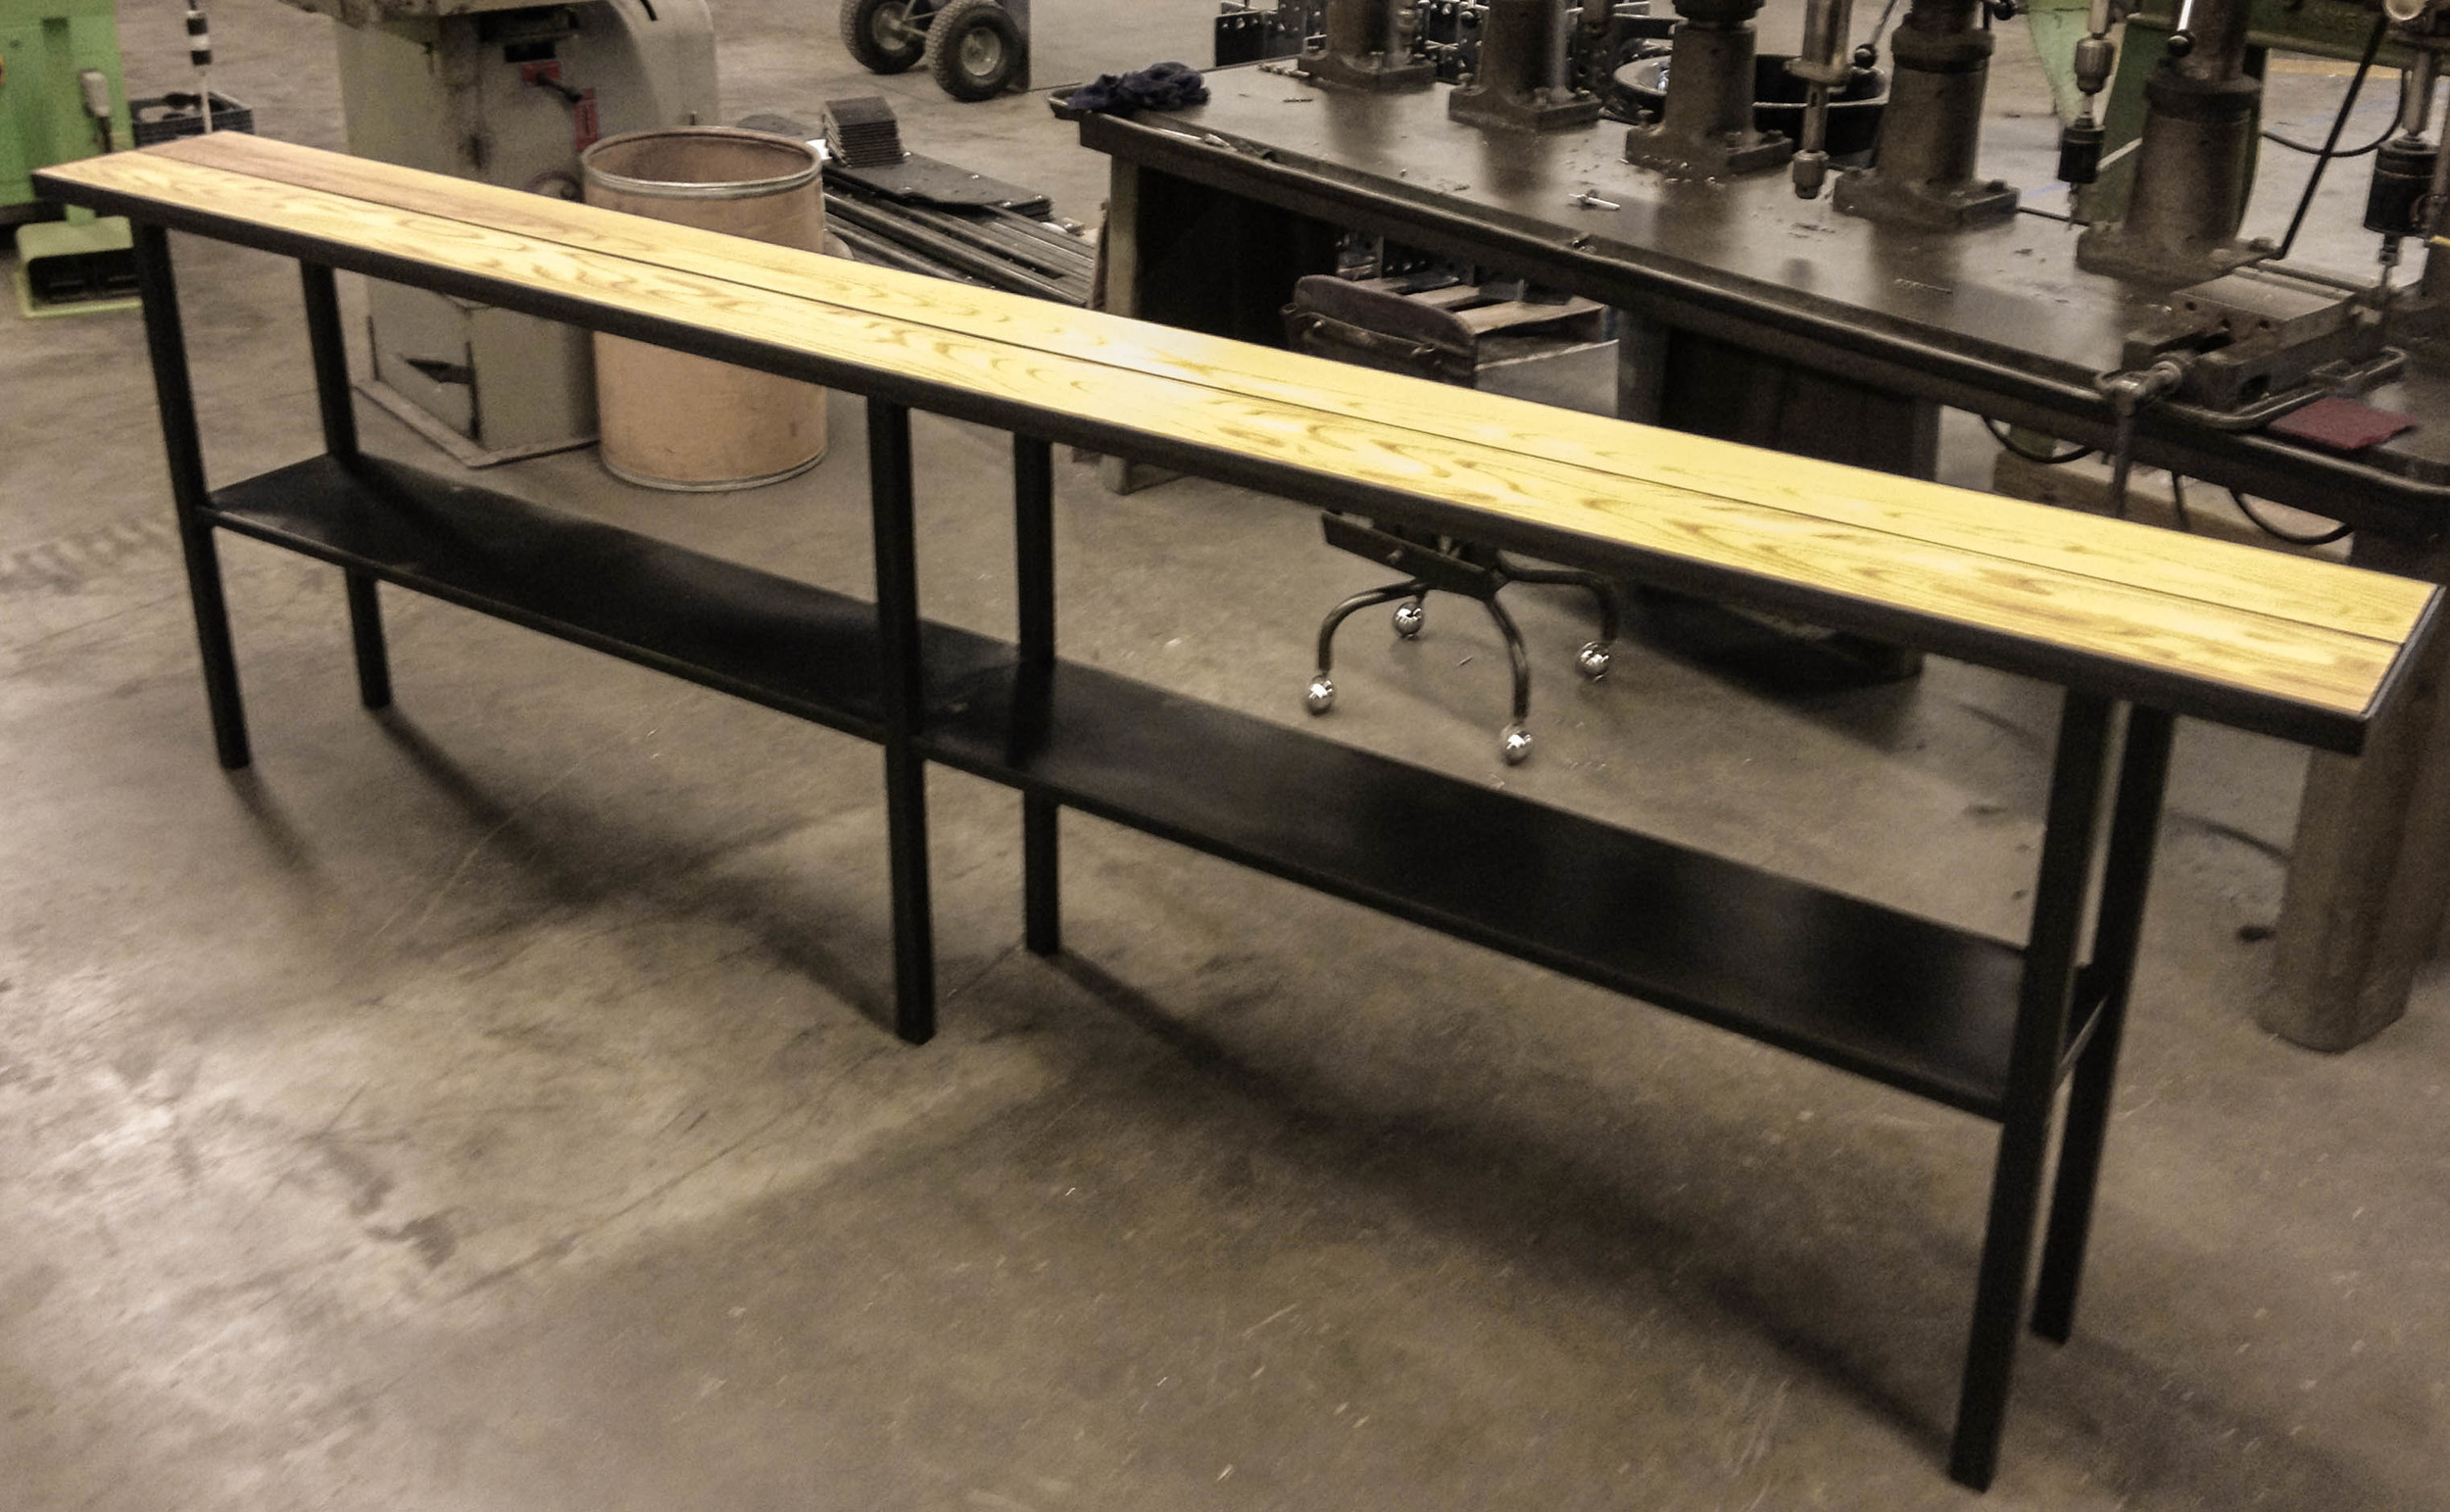 long-thin table-10.jpg